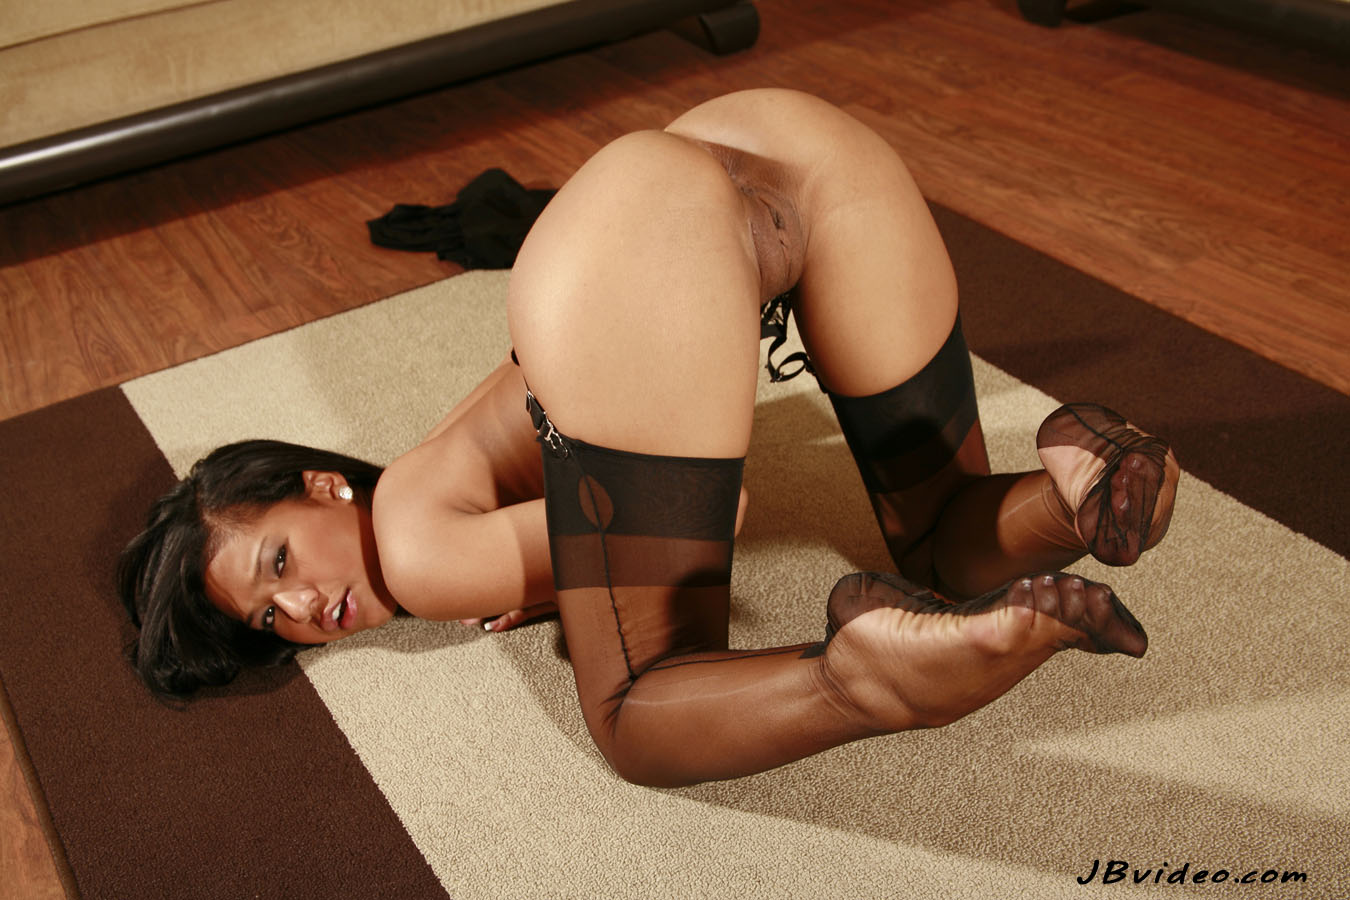 Good pantyhose and stocking fetish fucking hot